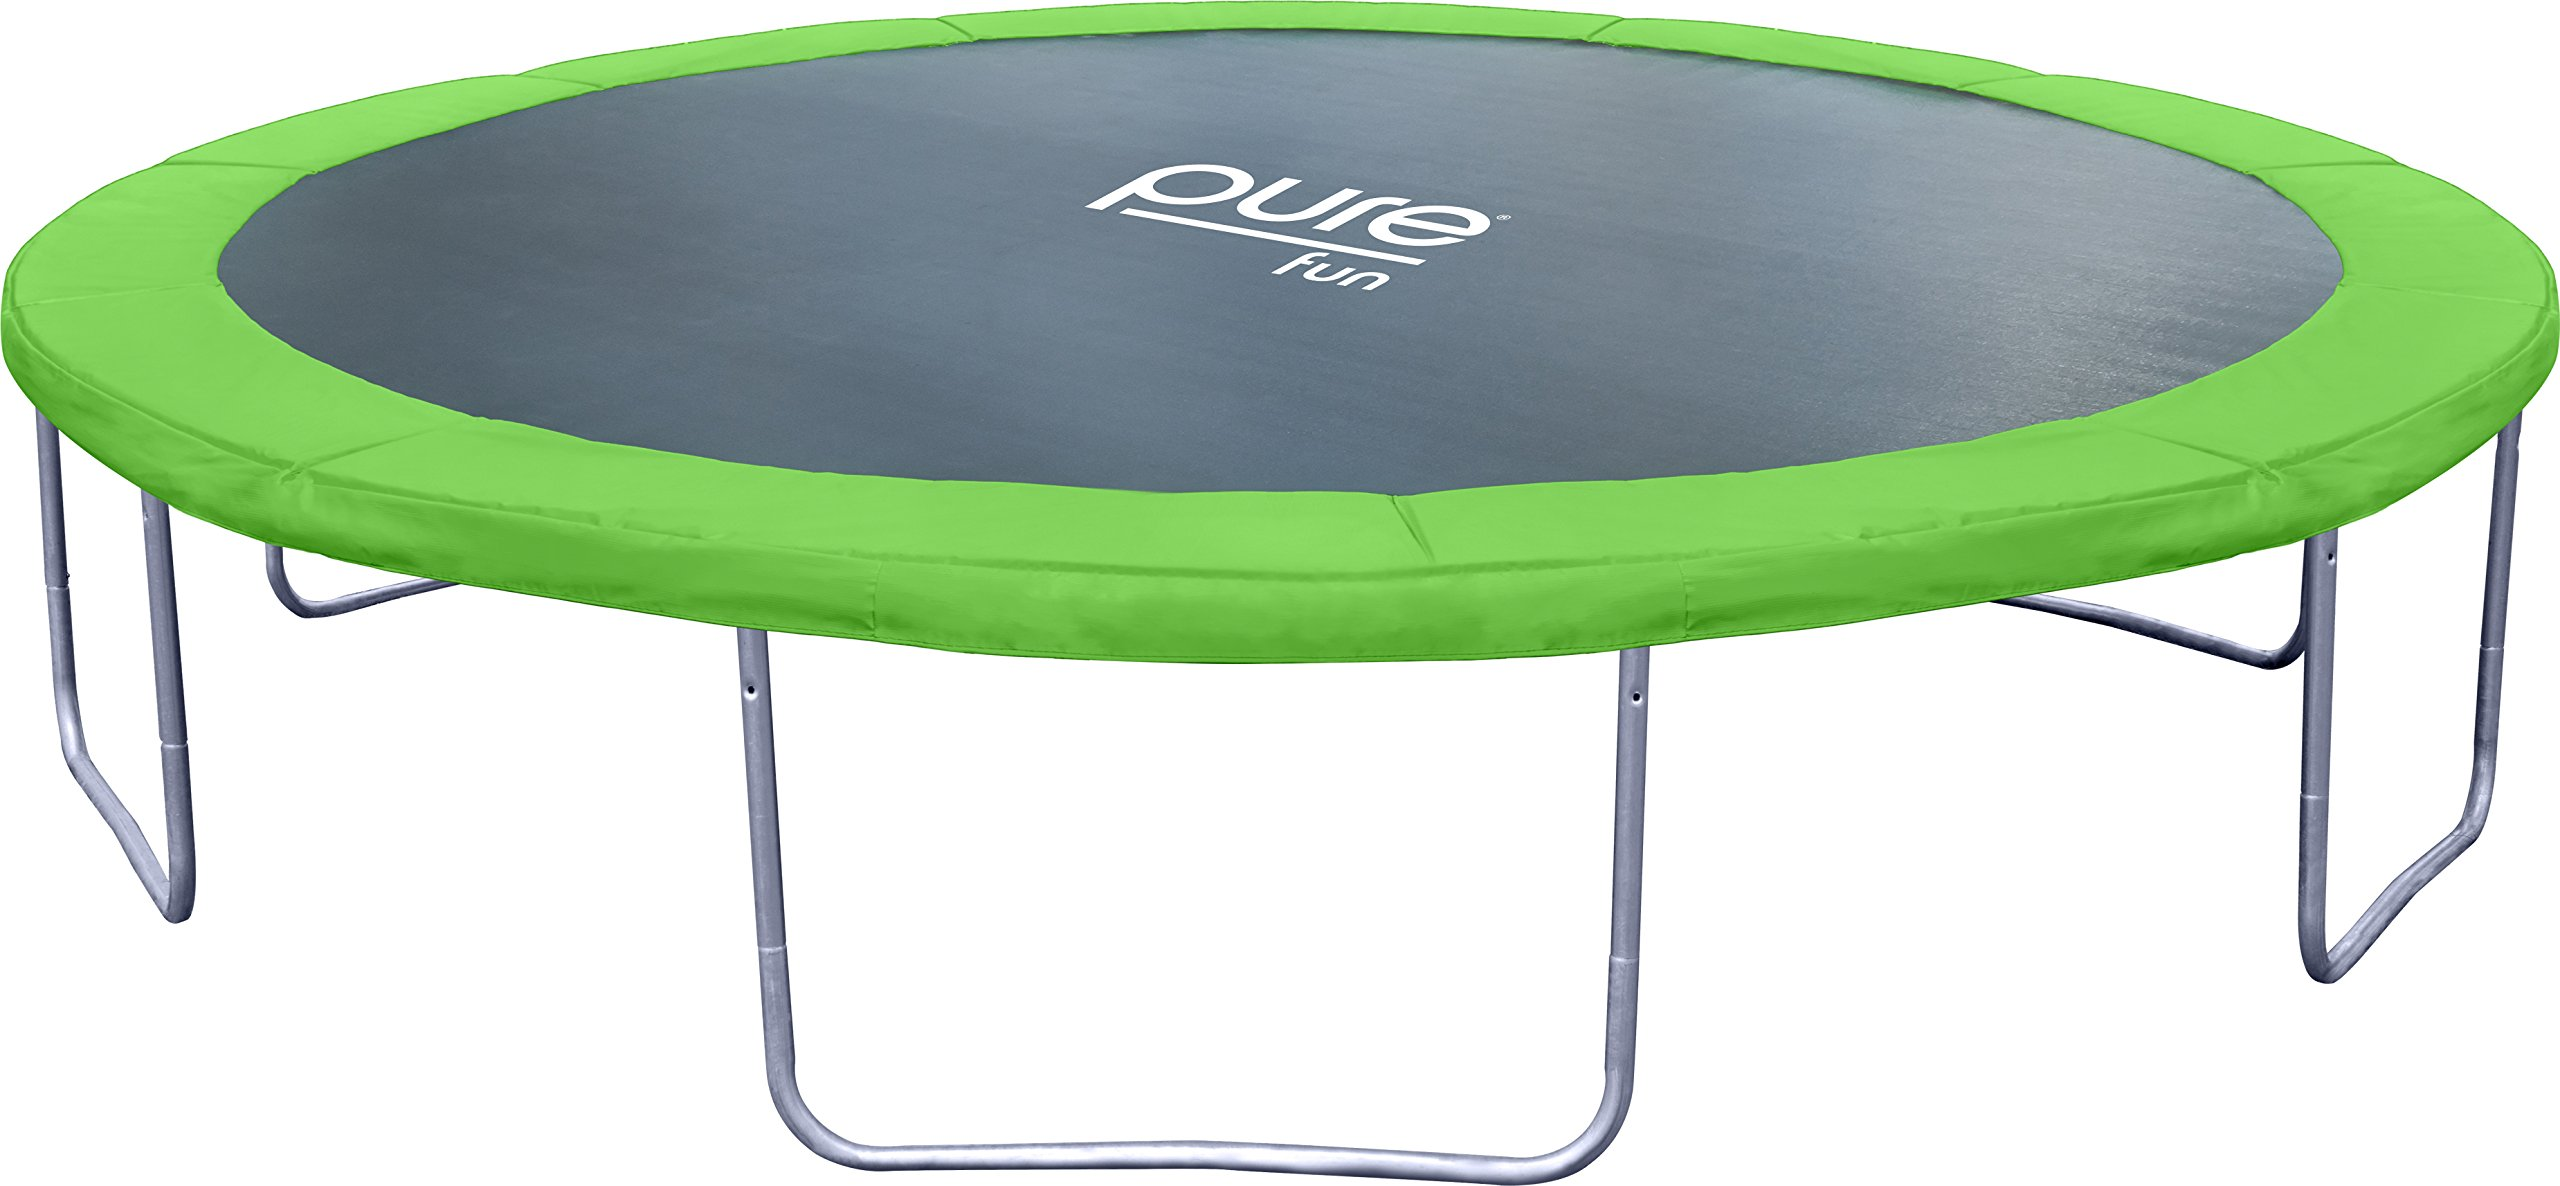 Pure Fun Dura-Bounce 14-Foot Outdoor Trampoline